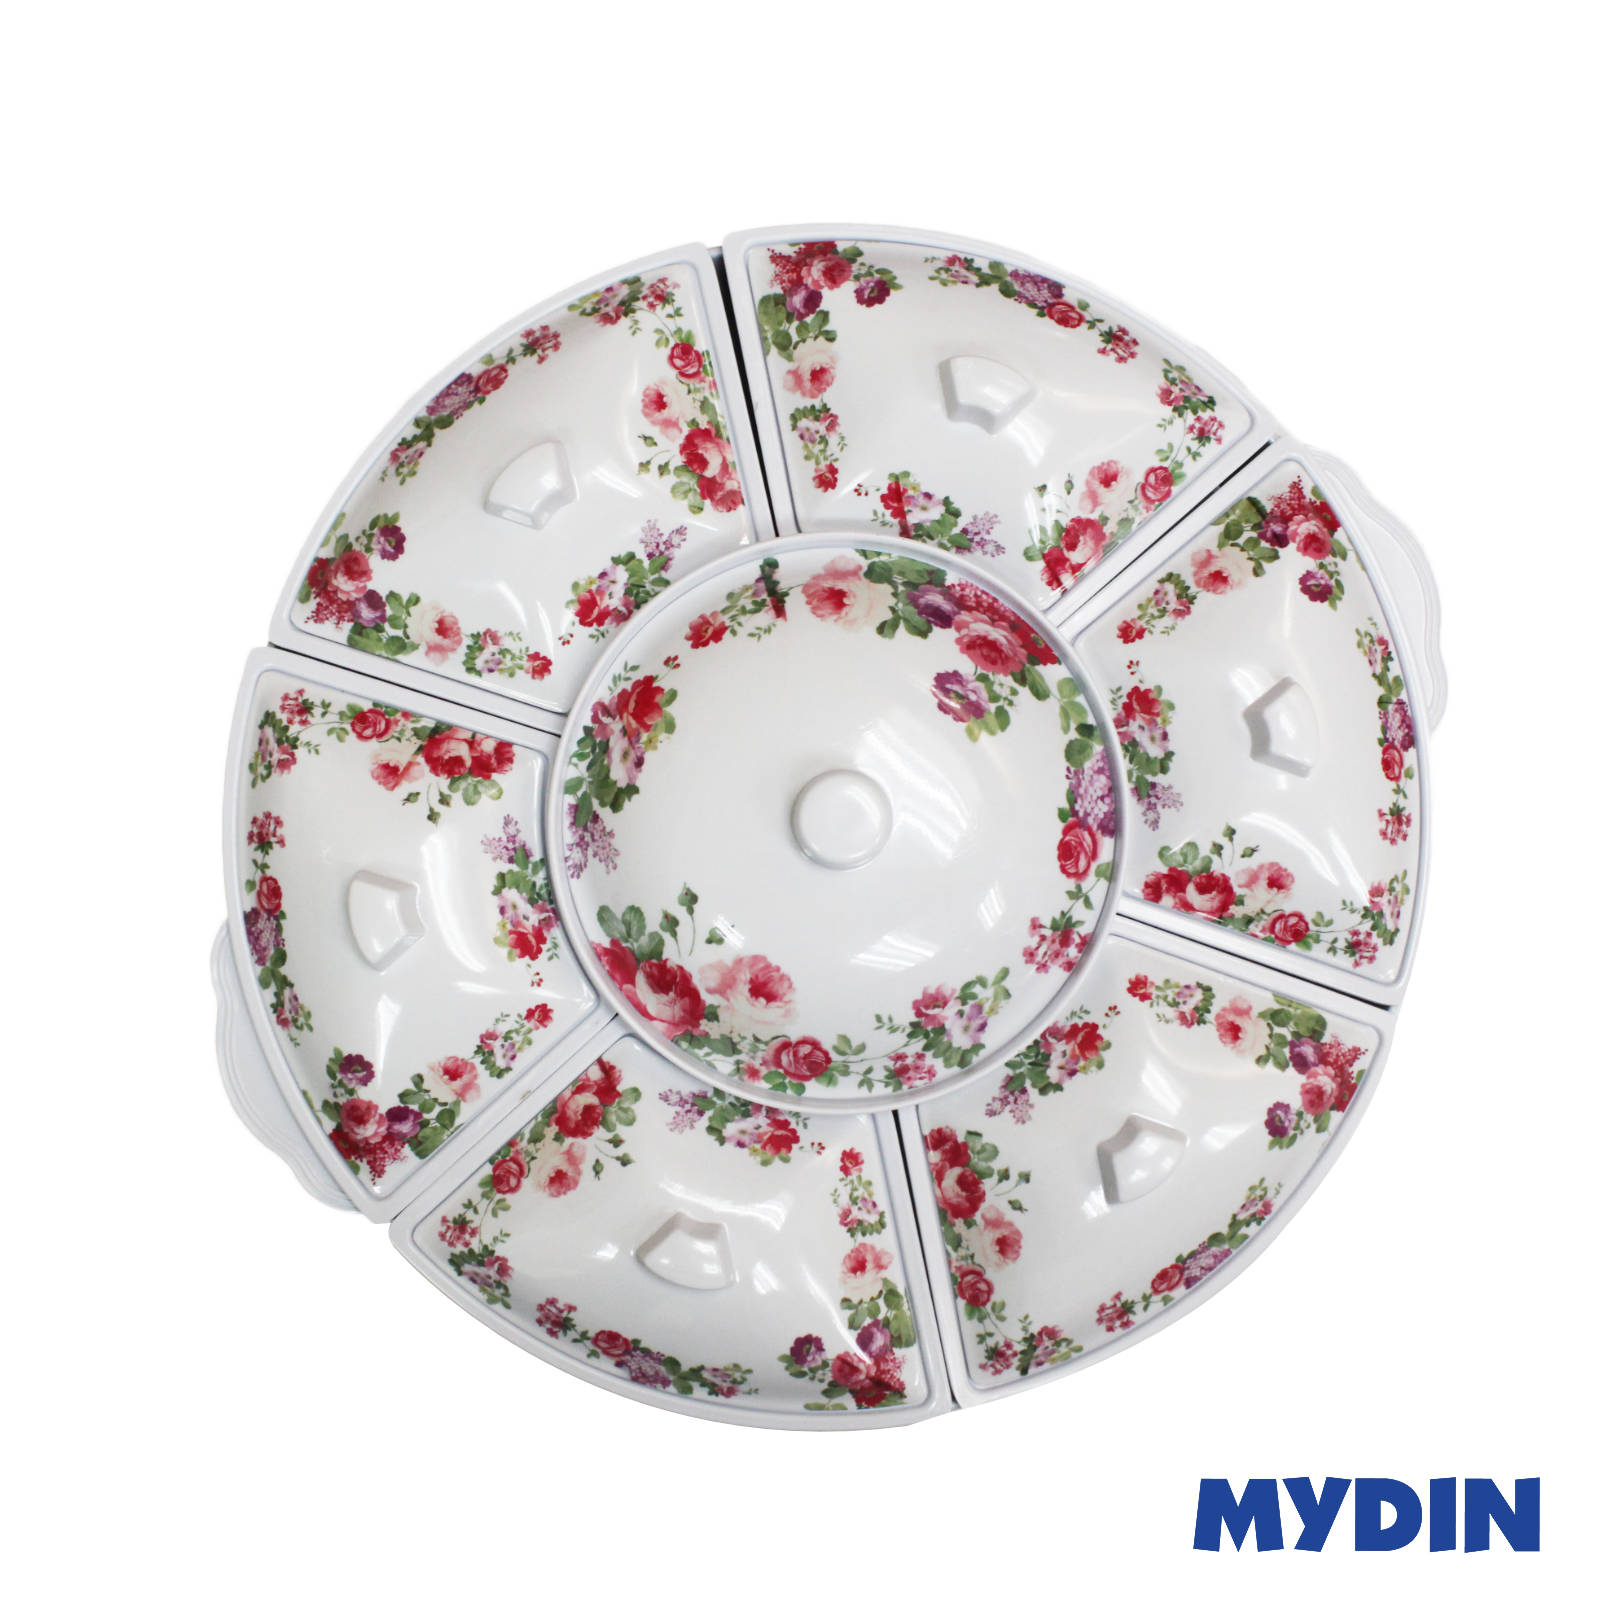 My Home Melamine Party Set (15pcs) FWR CW-PT-15S